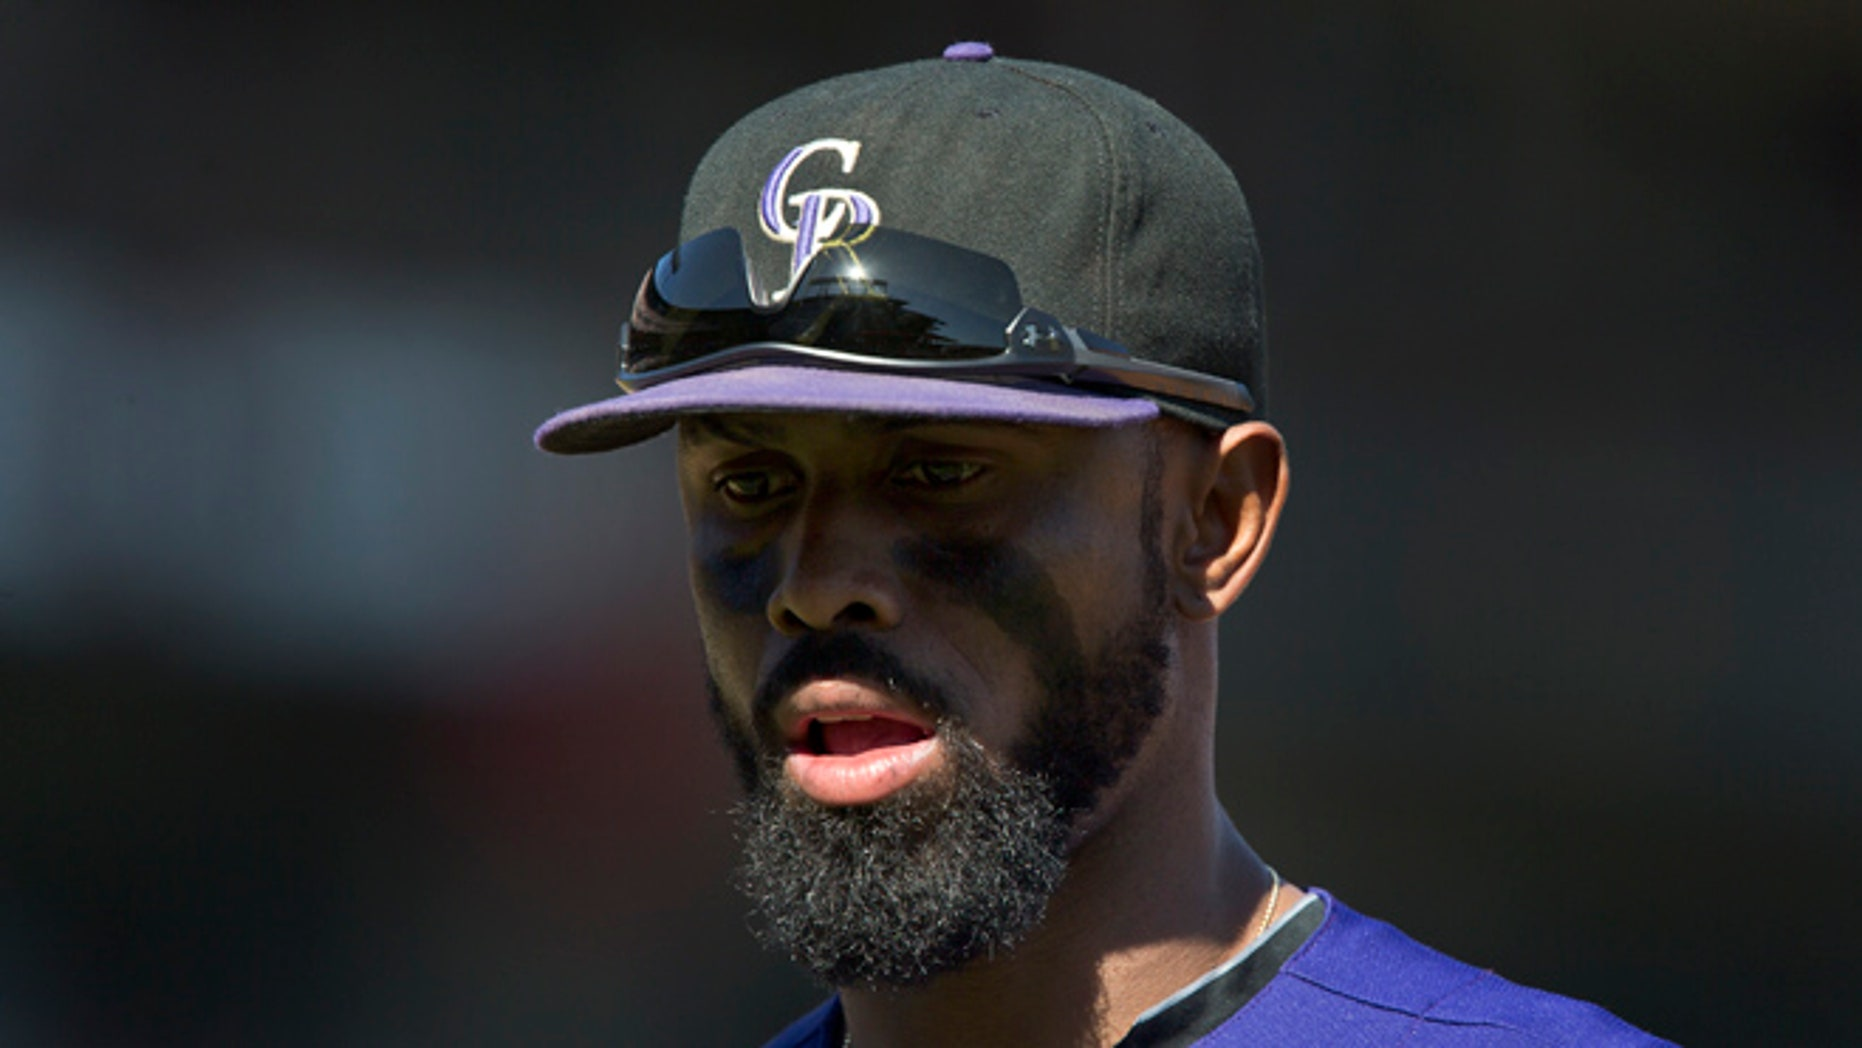 Shortstop Jose Reyes #7 of the Colorado Rockies heads to the dugout trailing 0-3 after the seventh inning against the San Francisco Giants at AT&T Park on October 4, 2015 in San Francisco, California, during the final day of the regular season.  (Photo by Brian Bahr/Getty Images)